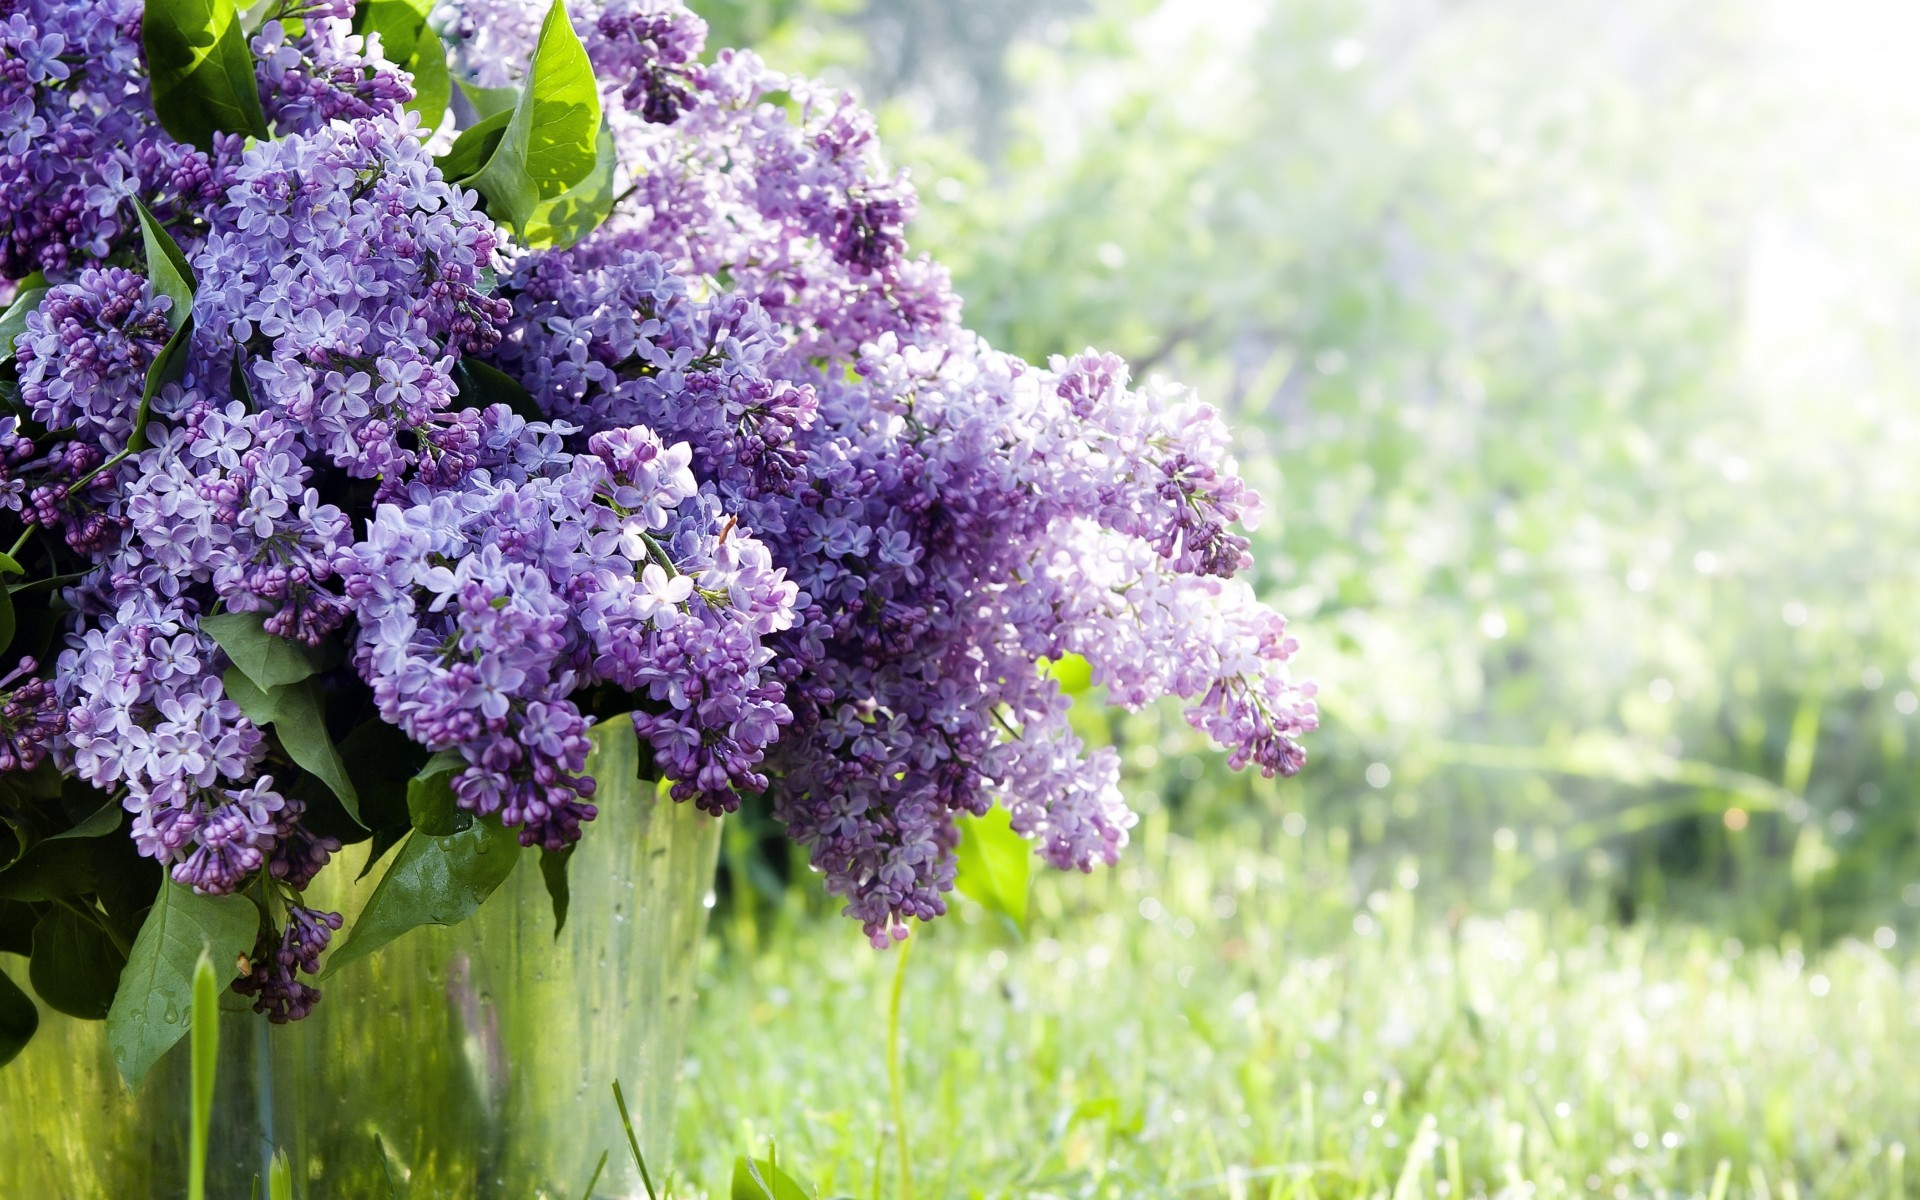 lilac twigs flowers bucket spring nature grass wallpaper background